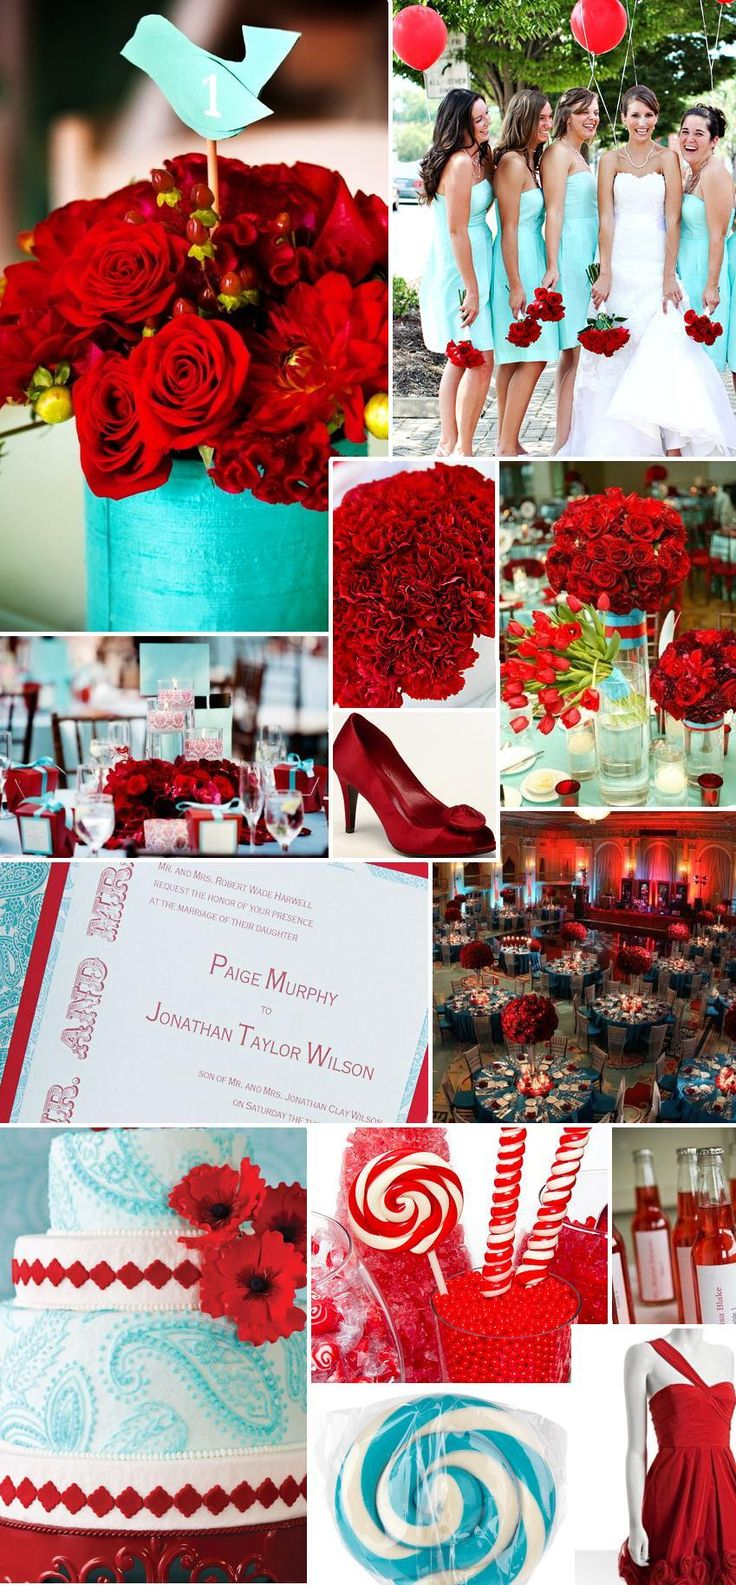 19 best Tiffany Blue (Aqua), Red, Black and White Wedding images on ...